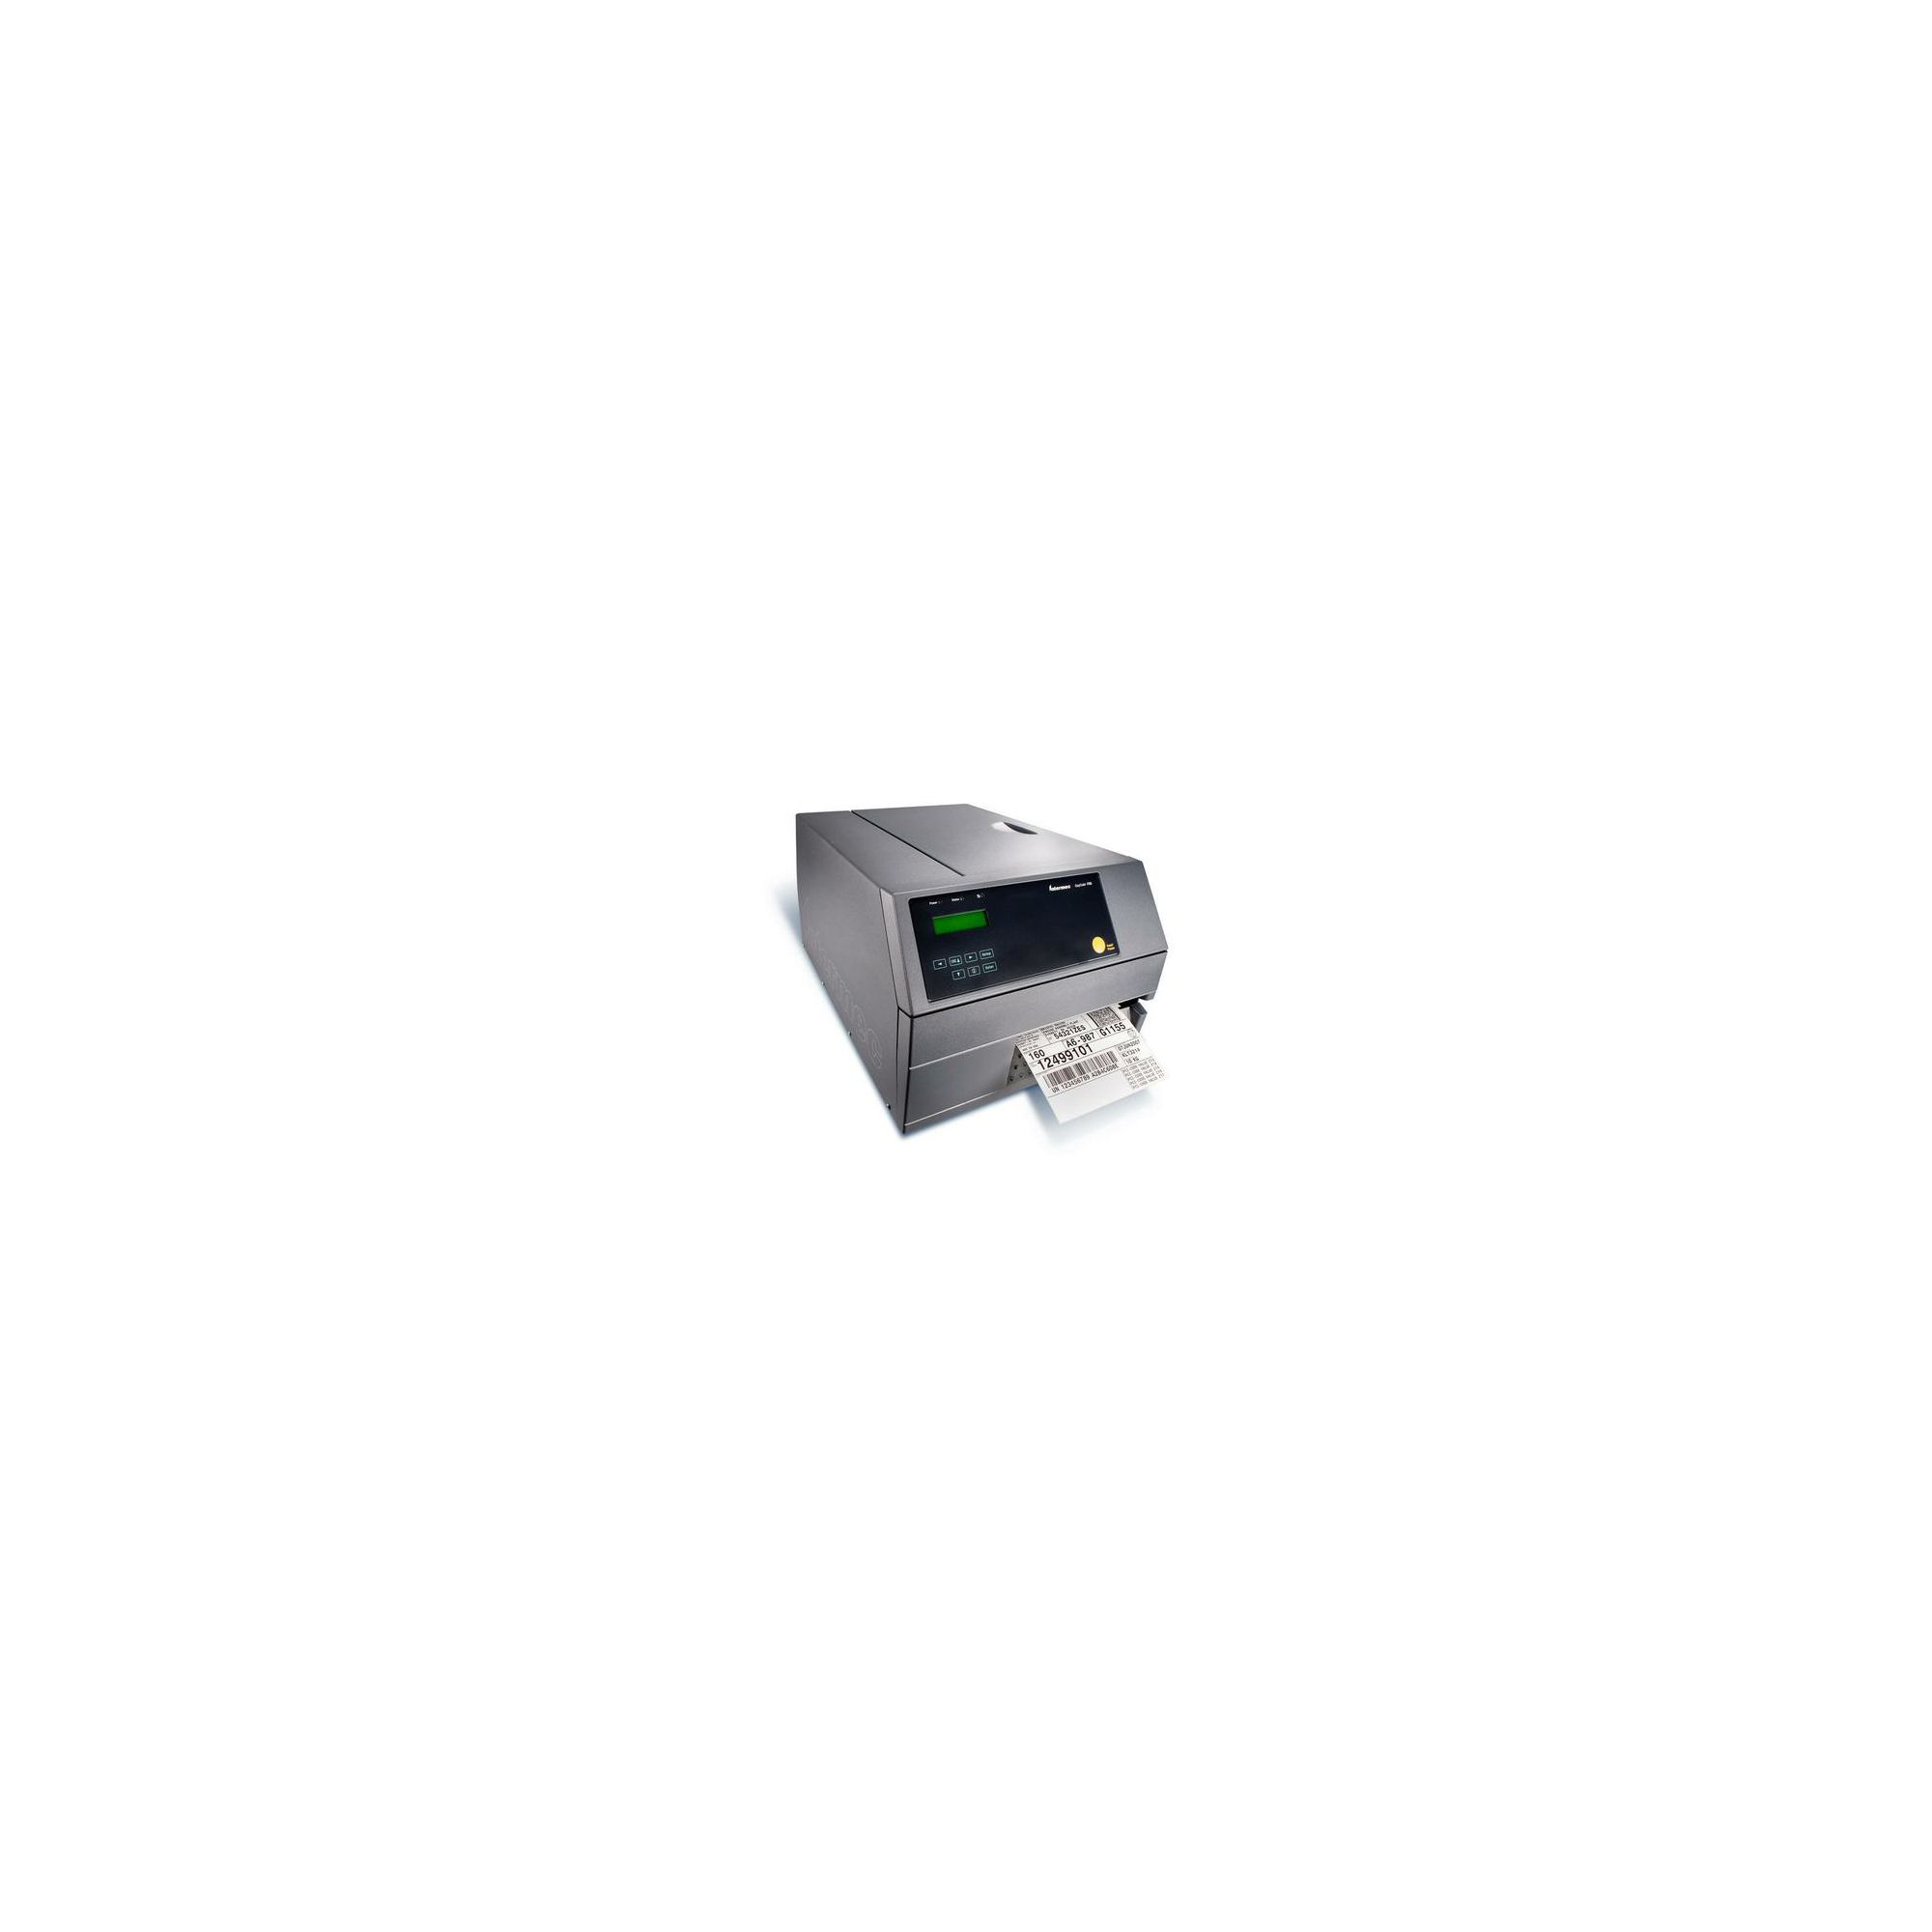 Intermec PX6i EasyCoder High Performance Printer at Tesco Direct